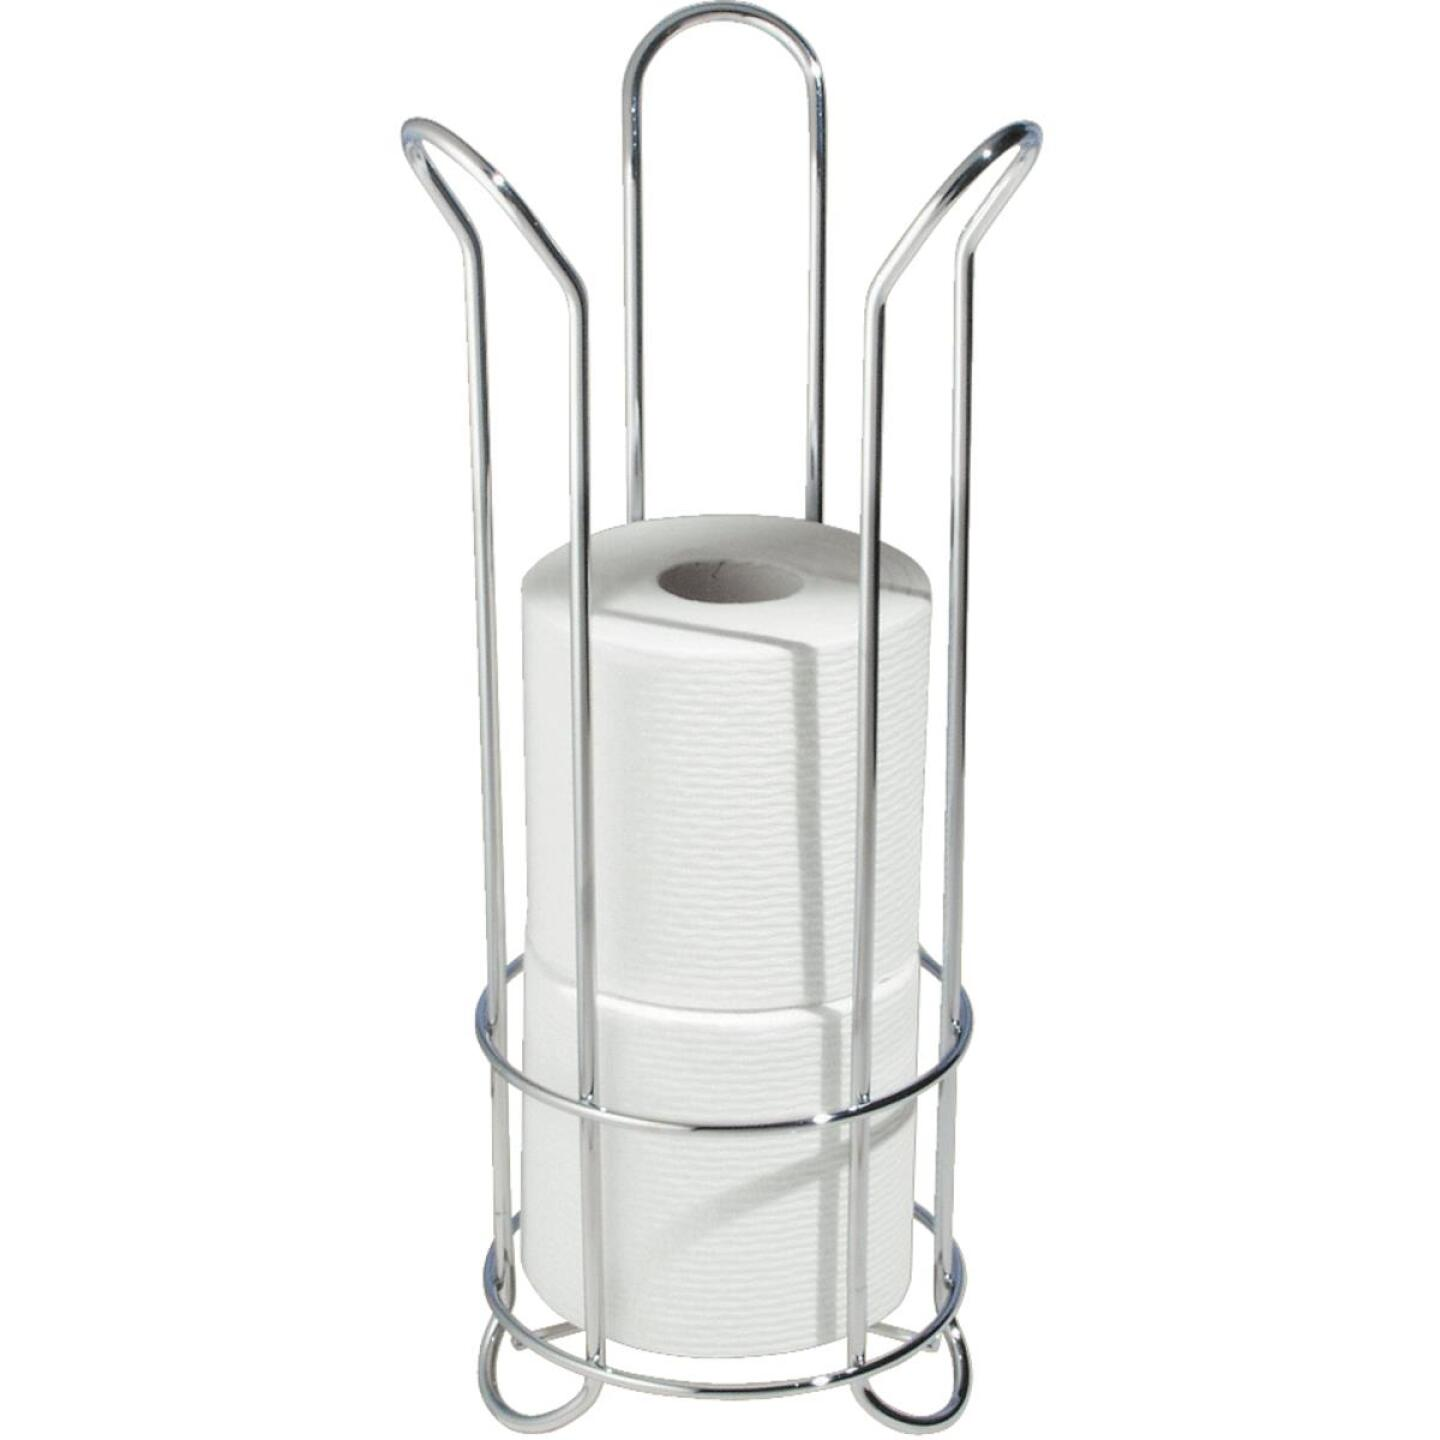 InterDesign Forma Chrome Tulip Freestanding Toilet Paper Holder Image 1